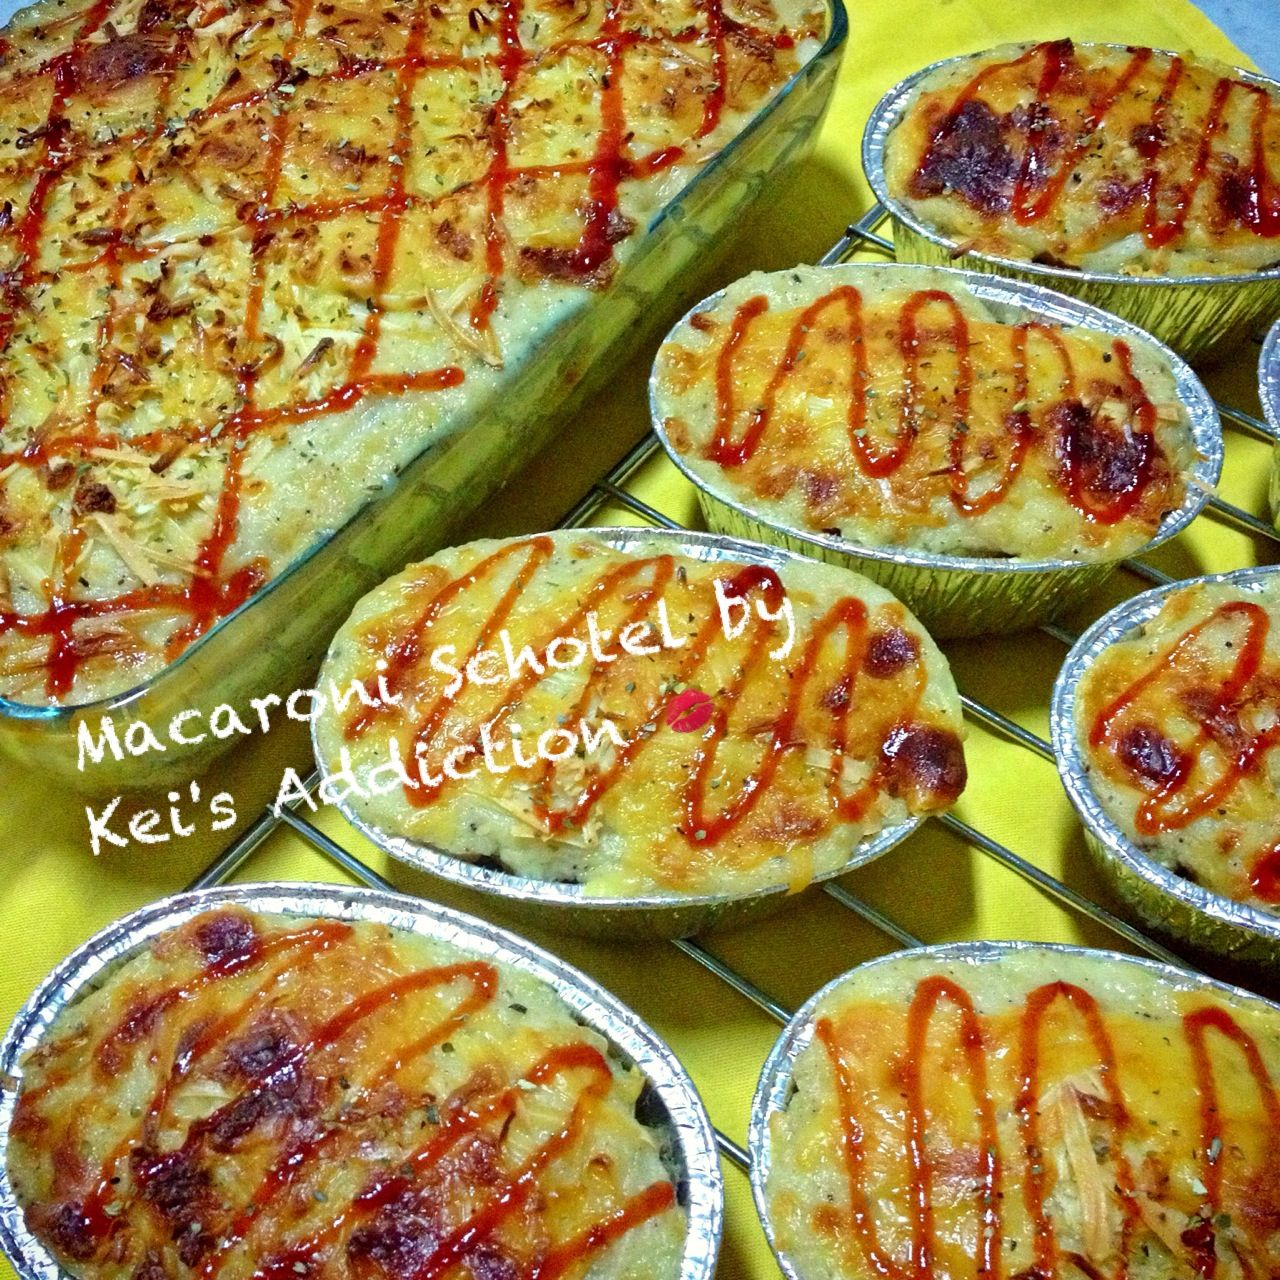 Macaroni beef schotel... Its perfect for breakfast, lunch or dinner....